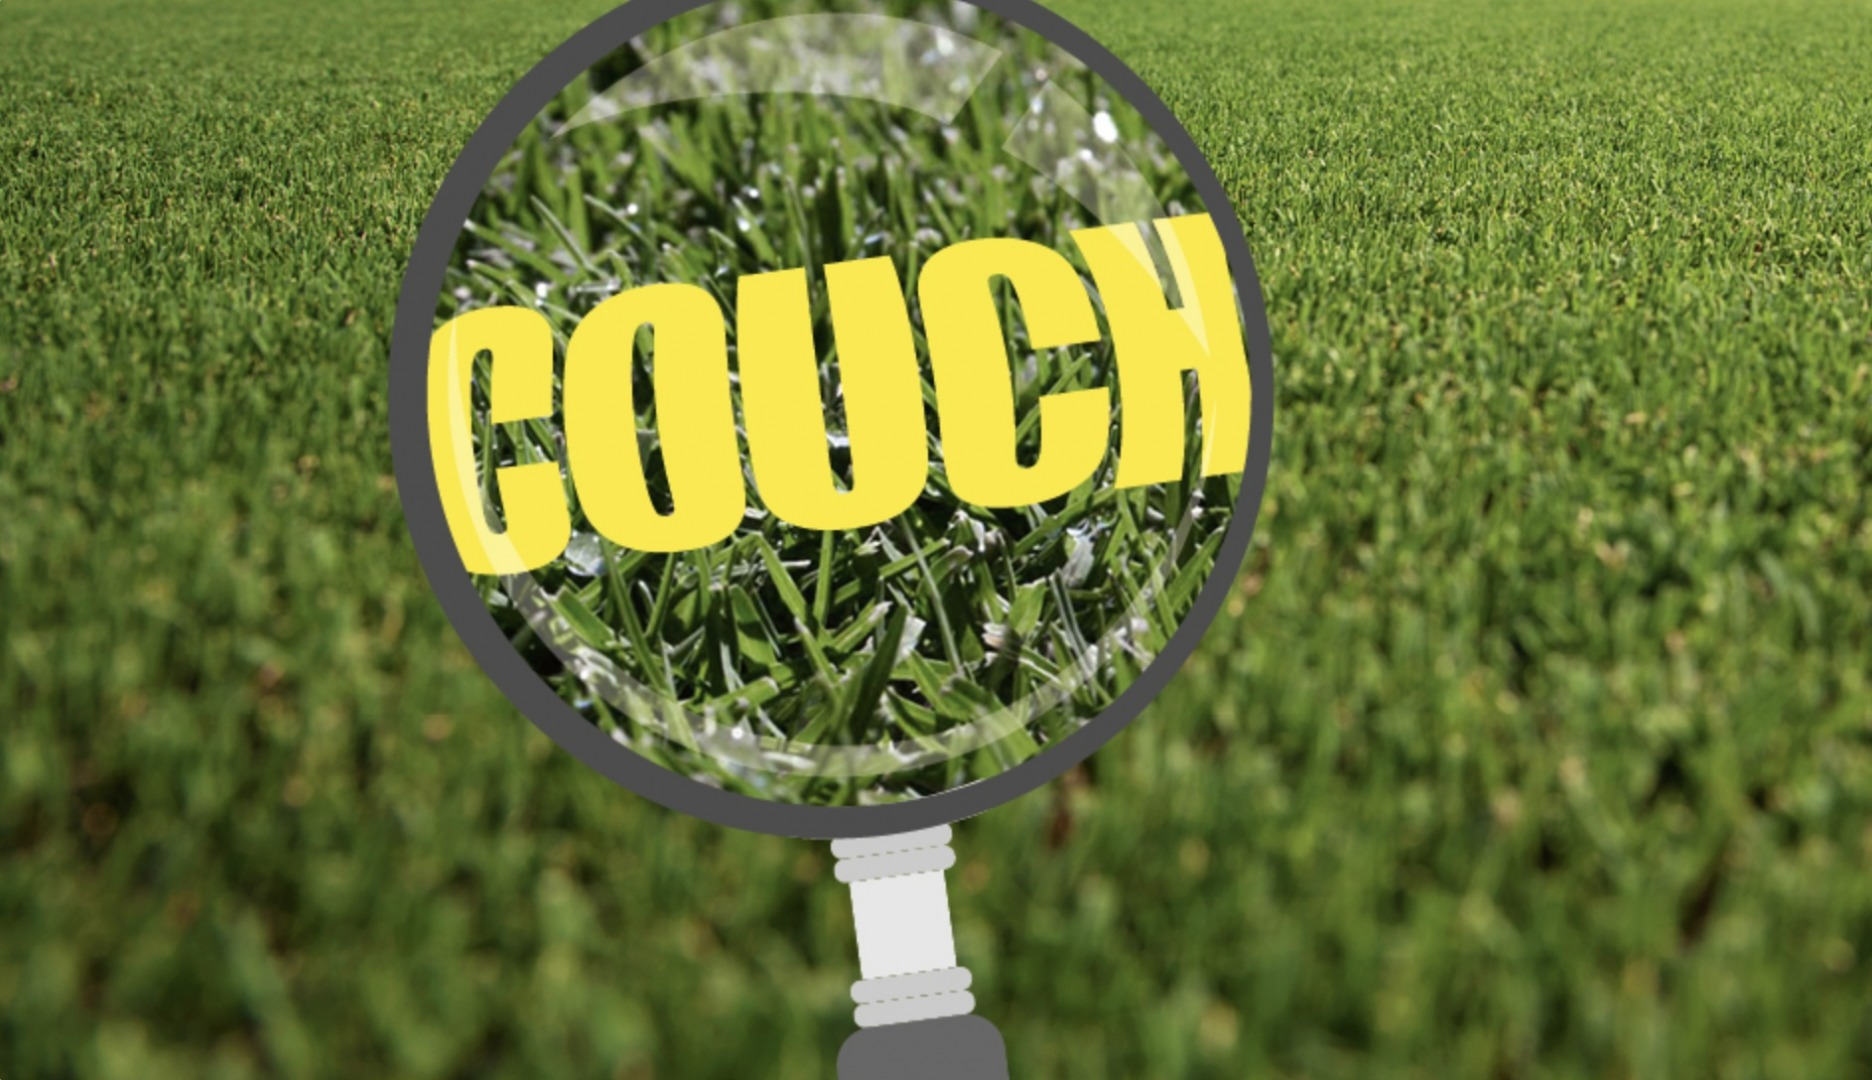 Couch Grass in Focus